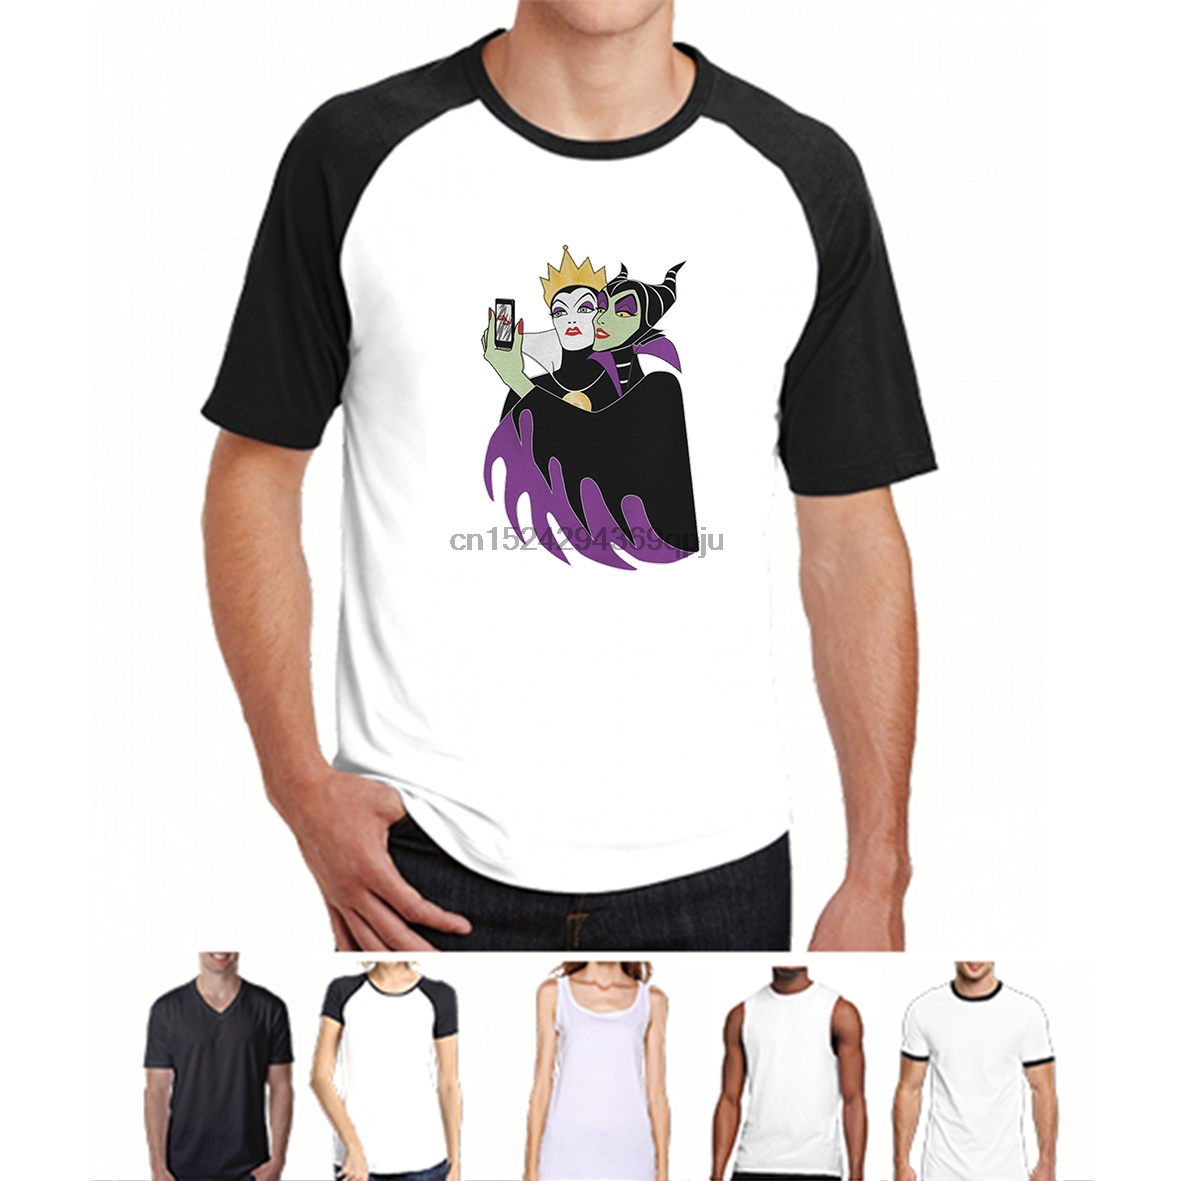 Us 12 99 Funny T Shirts Maleficent Villain Fashion Tshirt Men T Shirt In T Shirts From Men S Clothing On Aliexpress 11 11 Double 11 Singles Day